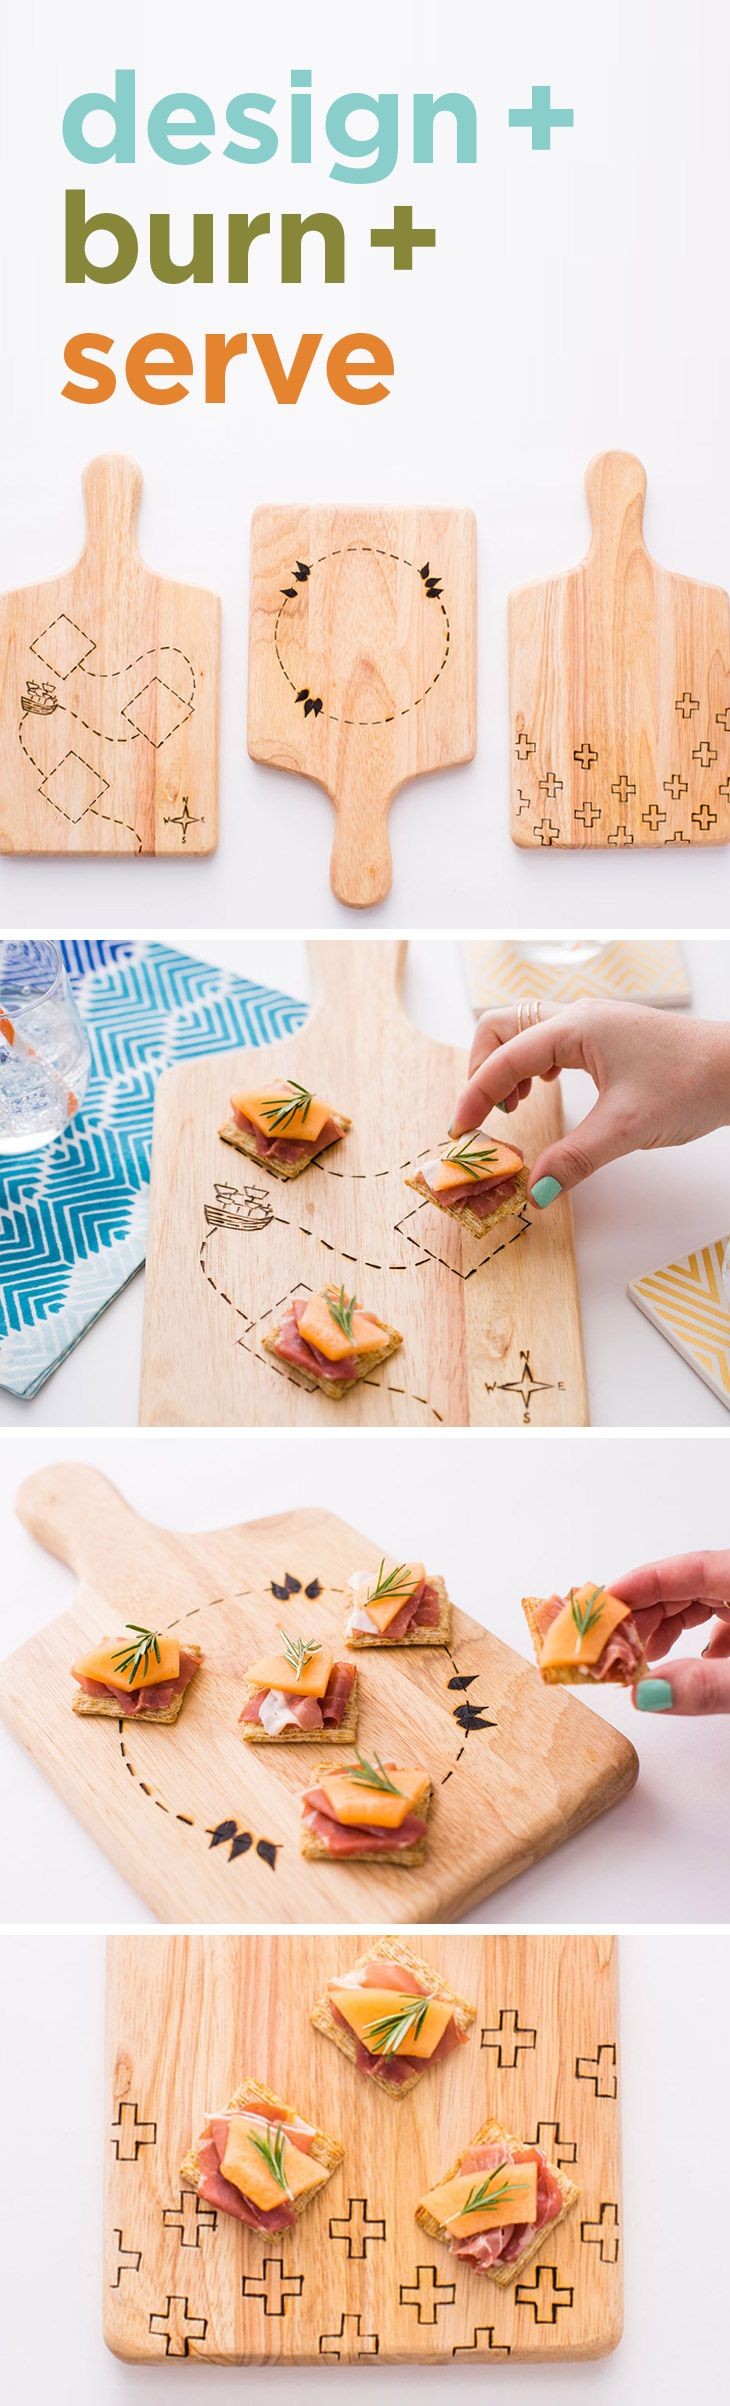 Design your perfect party platter with this DIY kit from Brit+Co. Don't forget to top it with your favorite Triscuit combination.